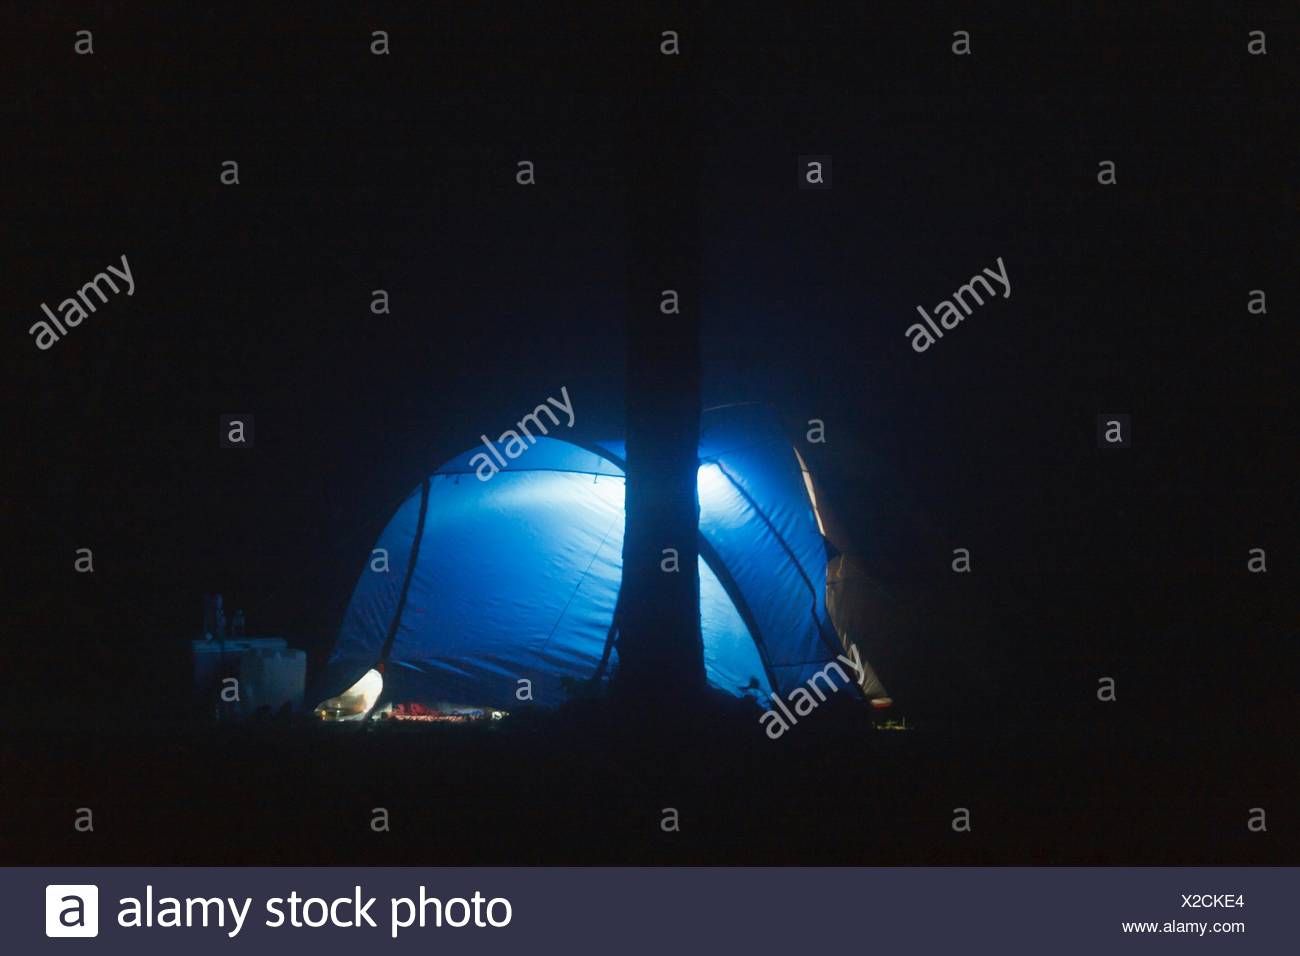 Blue Illuminated Dome Tent On Field At Night - Stock Image